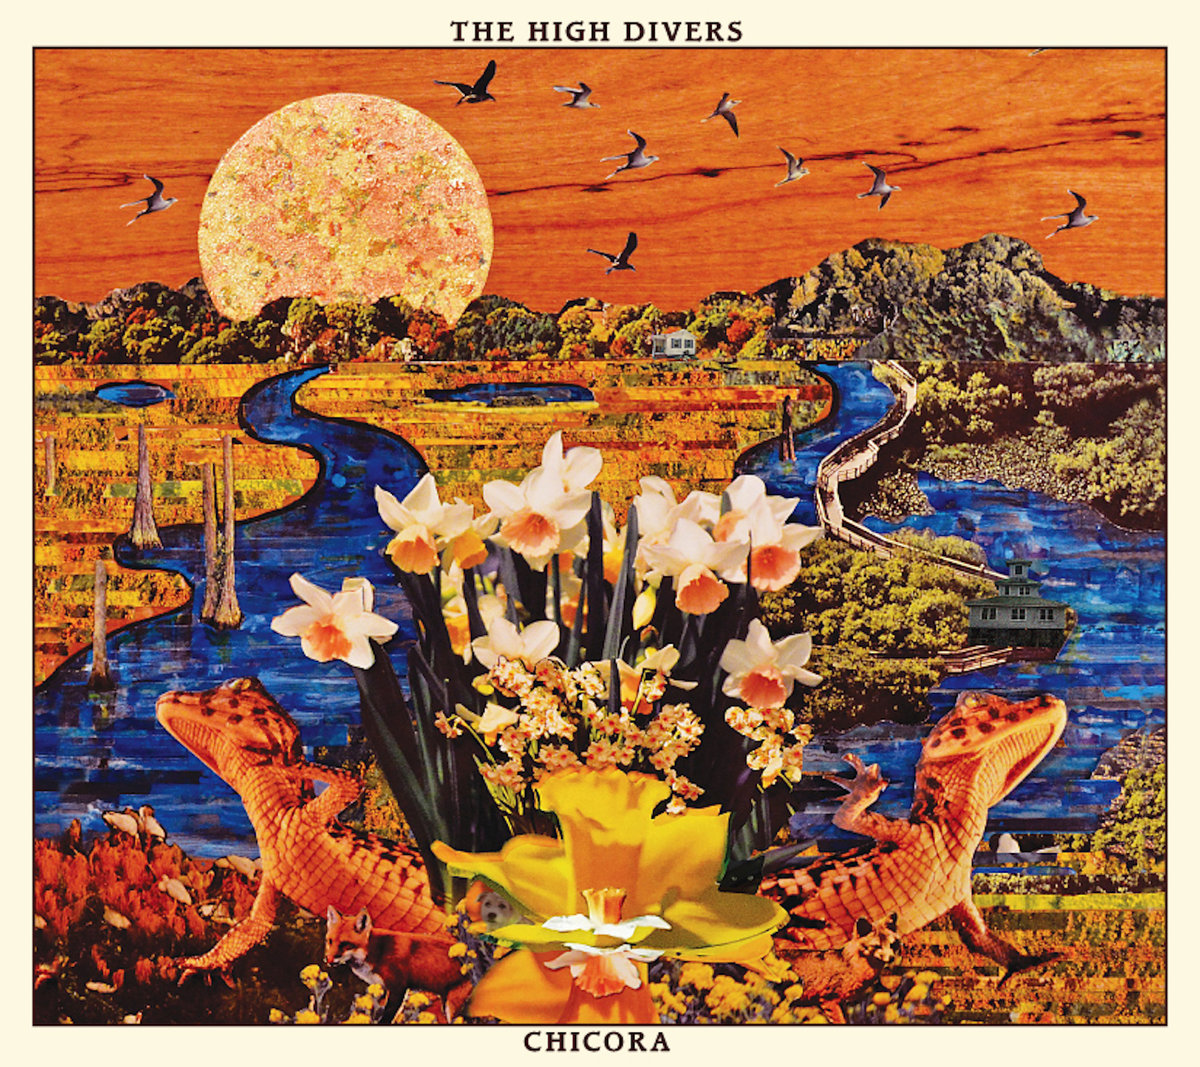 The High Divers